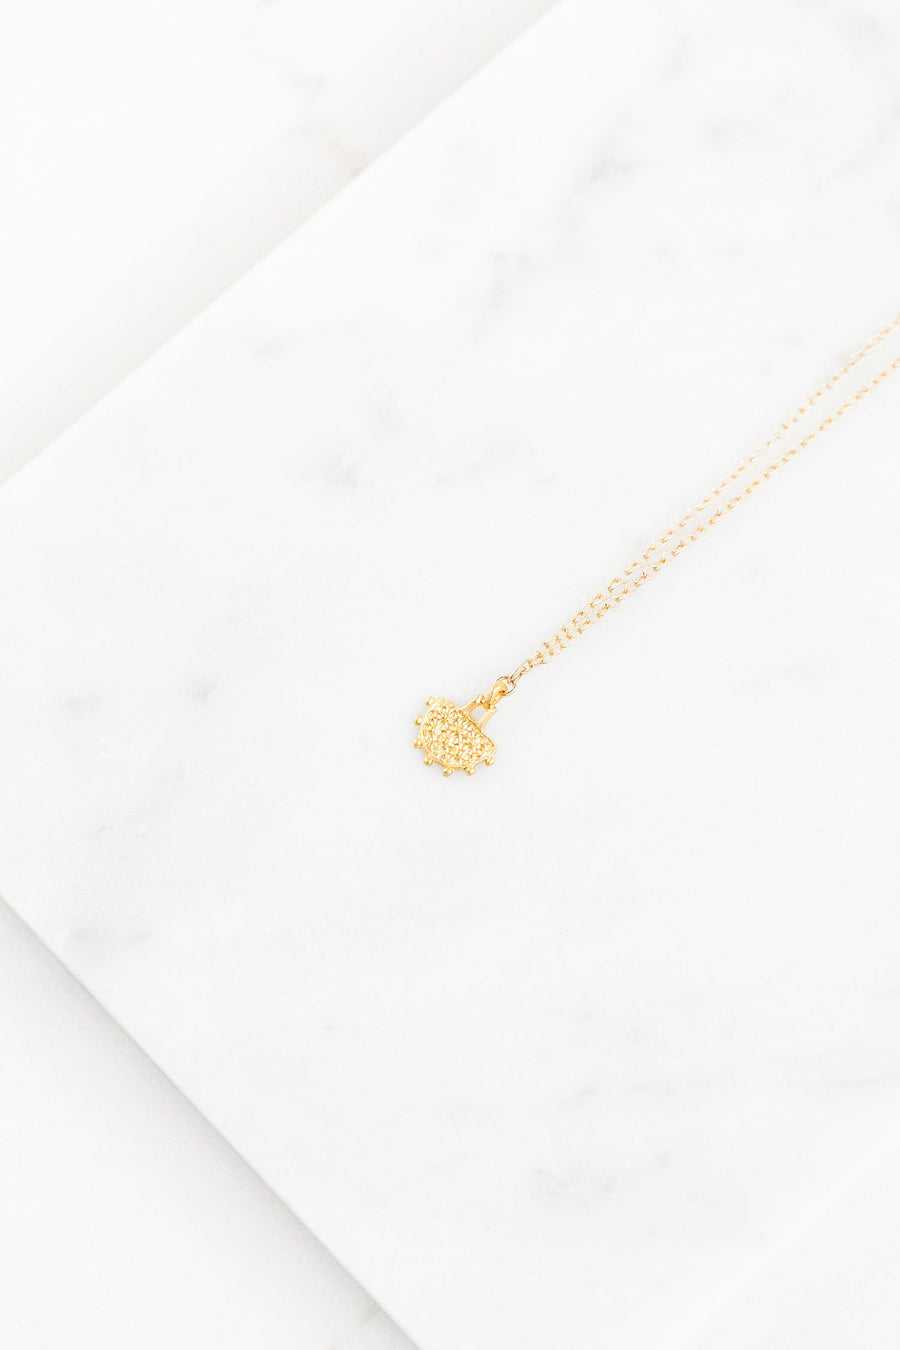 Find the perfect necklace you're looking for from Charme Silkiner! This beautiful 14K Gold Chain Necklace with a Tribal Pendant is perfection. Great for layering or wearing alone the Milo Necklace is the perfect piece of unique jewelry that everyone should own.